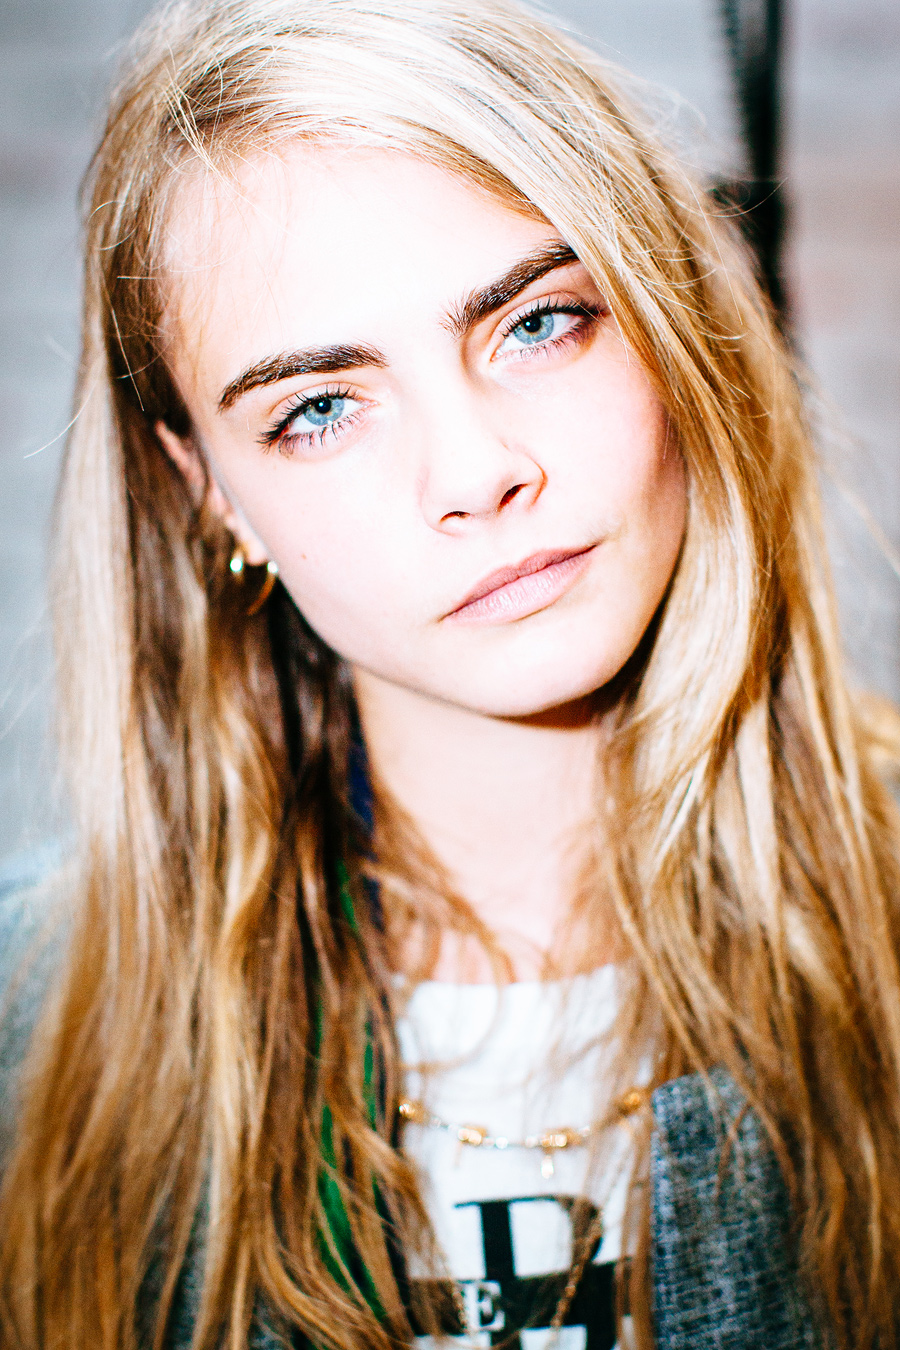 Cute Wallpapers For Edgy Girls Who Is Cara Delevingne If You Don T Know Just The Design